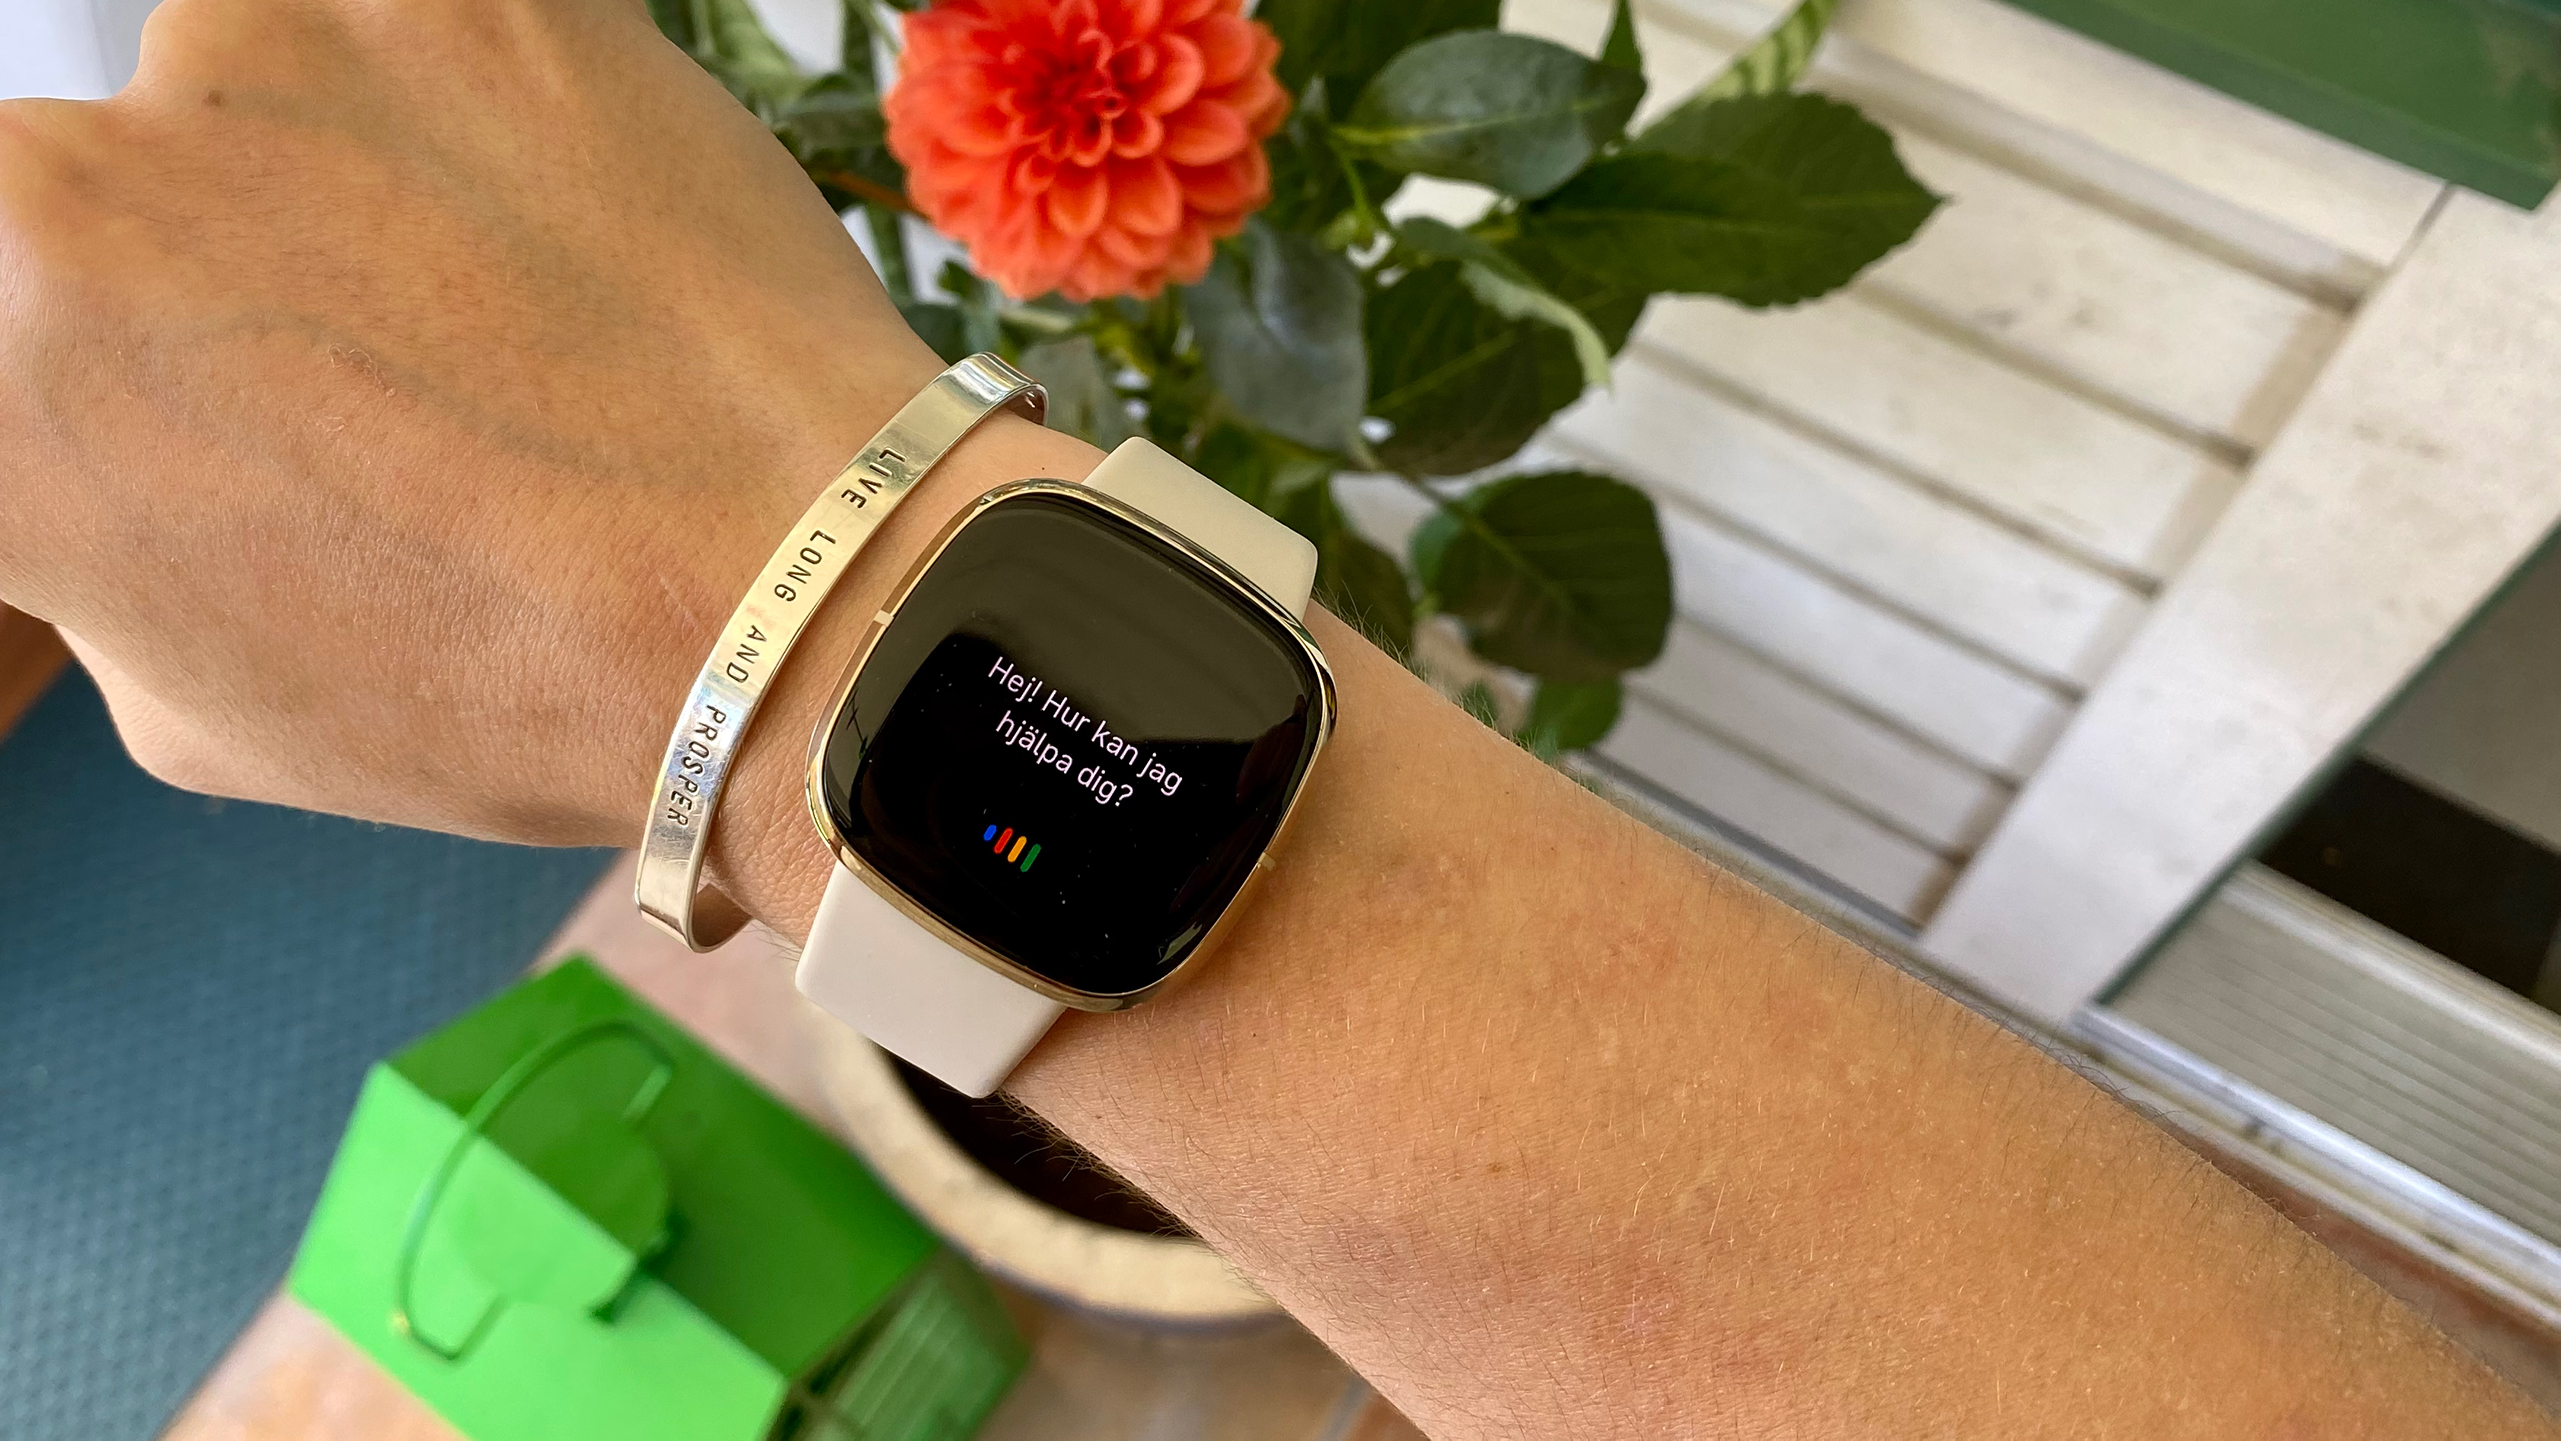 The Fitbit Sense showing the Google Assistant